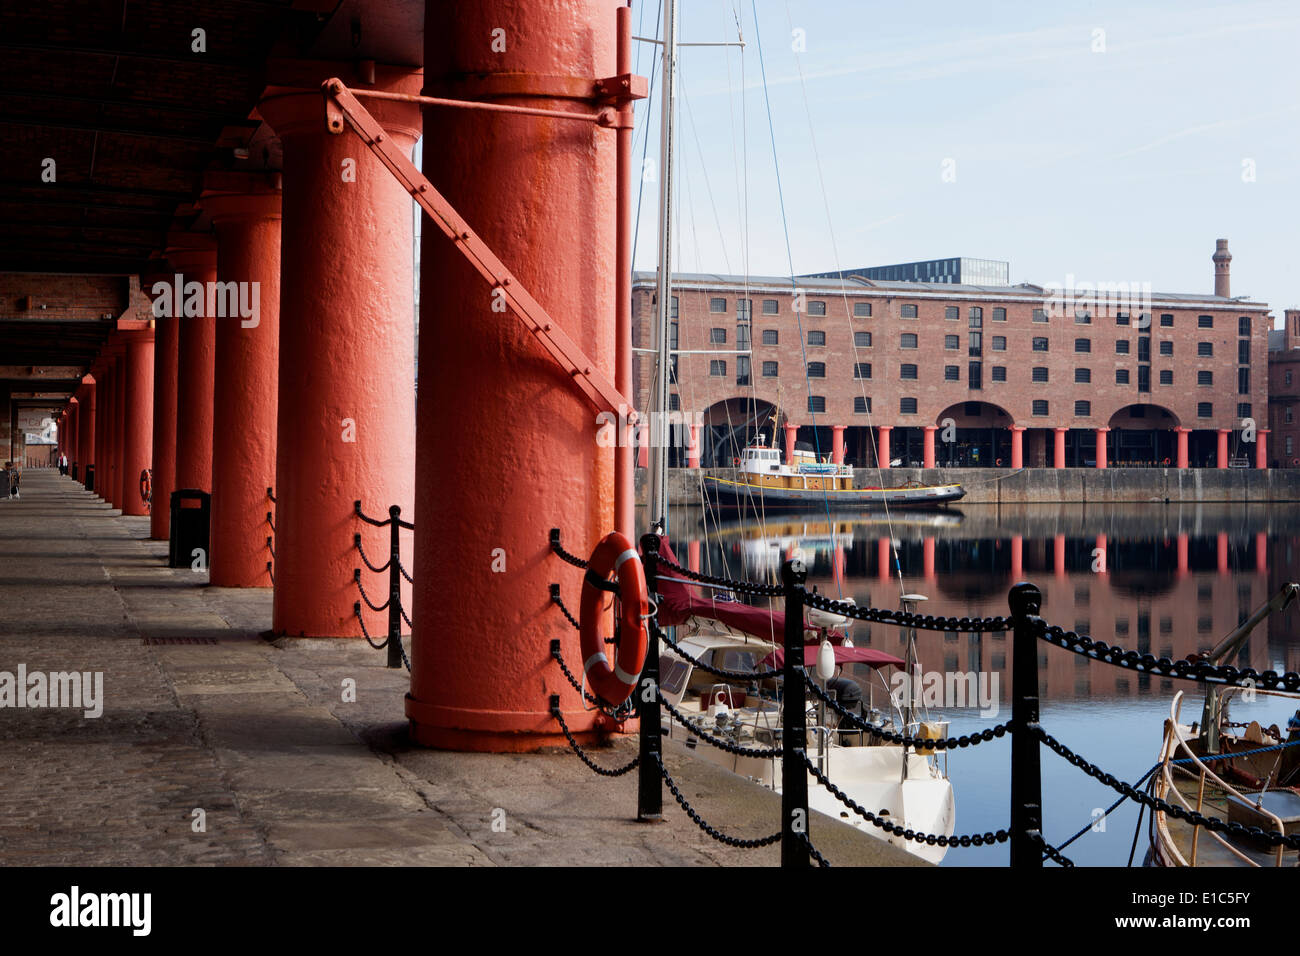 Boats in the Albert Docks at Liverpool - Stock Image